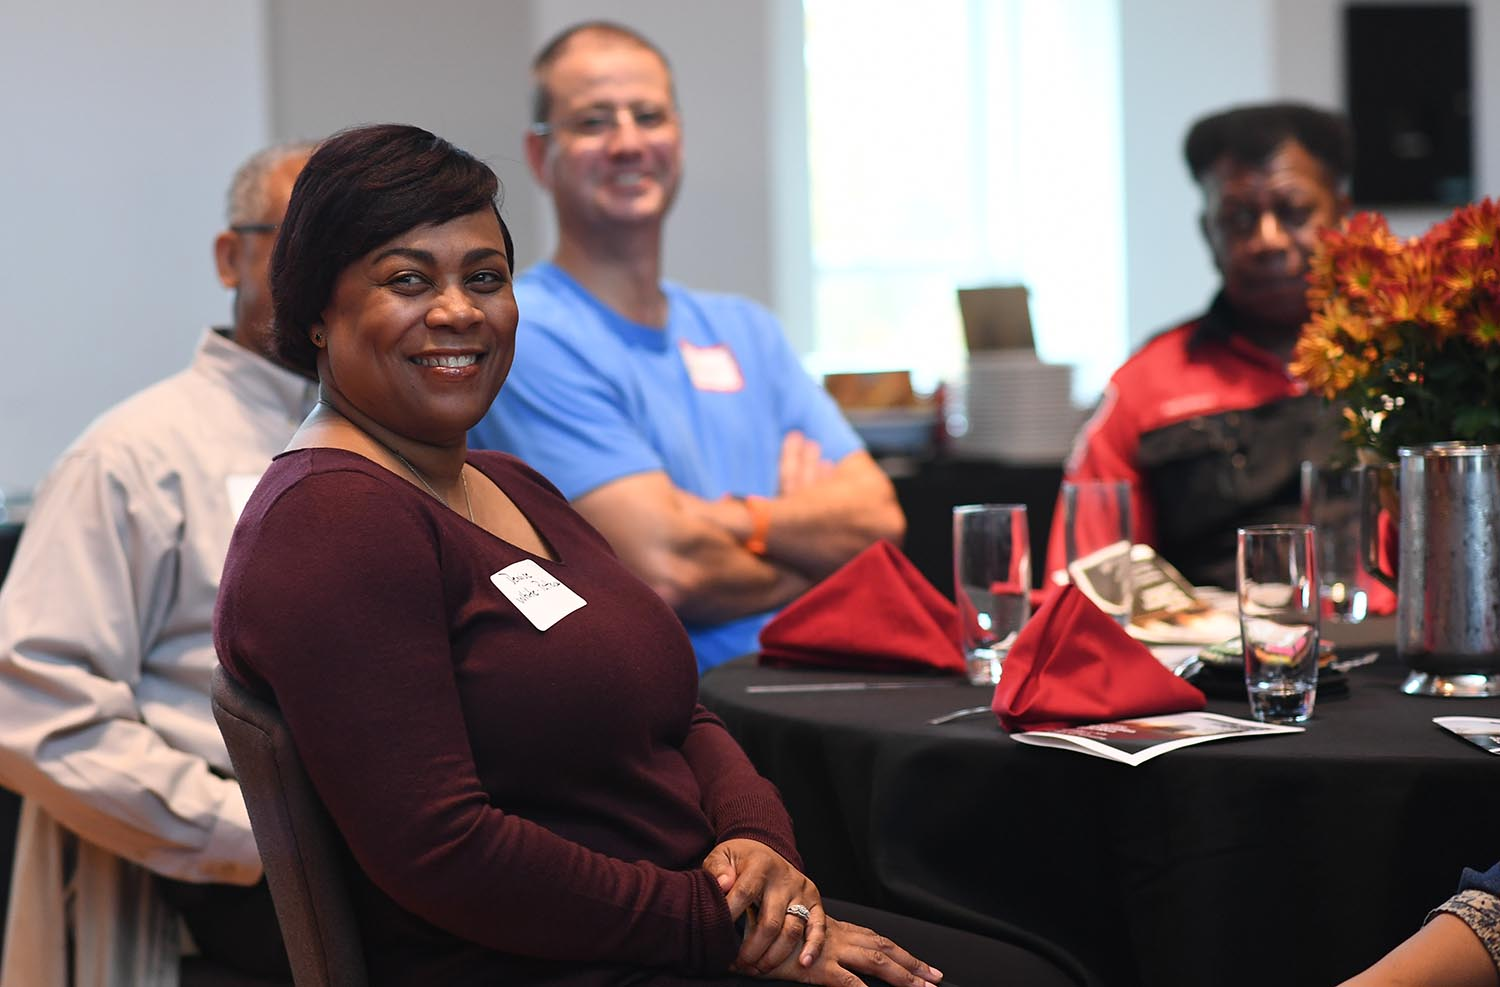 On Nov. 2, the Office of Human Resources hosted its annual Service Recognition Luncheon for employees who have worked at Wesleyan for 20, 25, 30, 35, and 40 or more years.